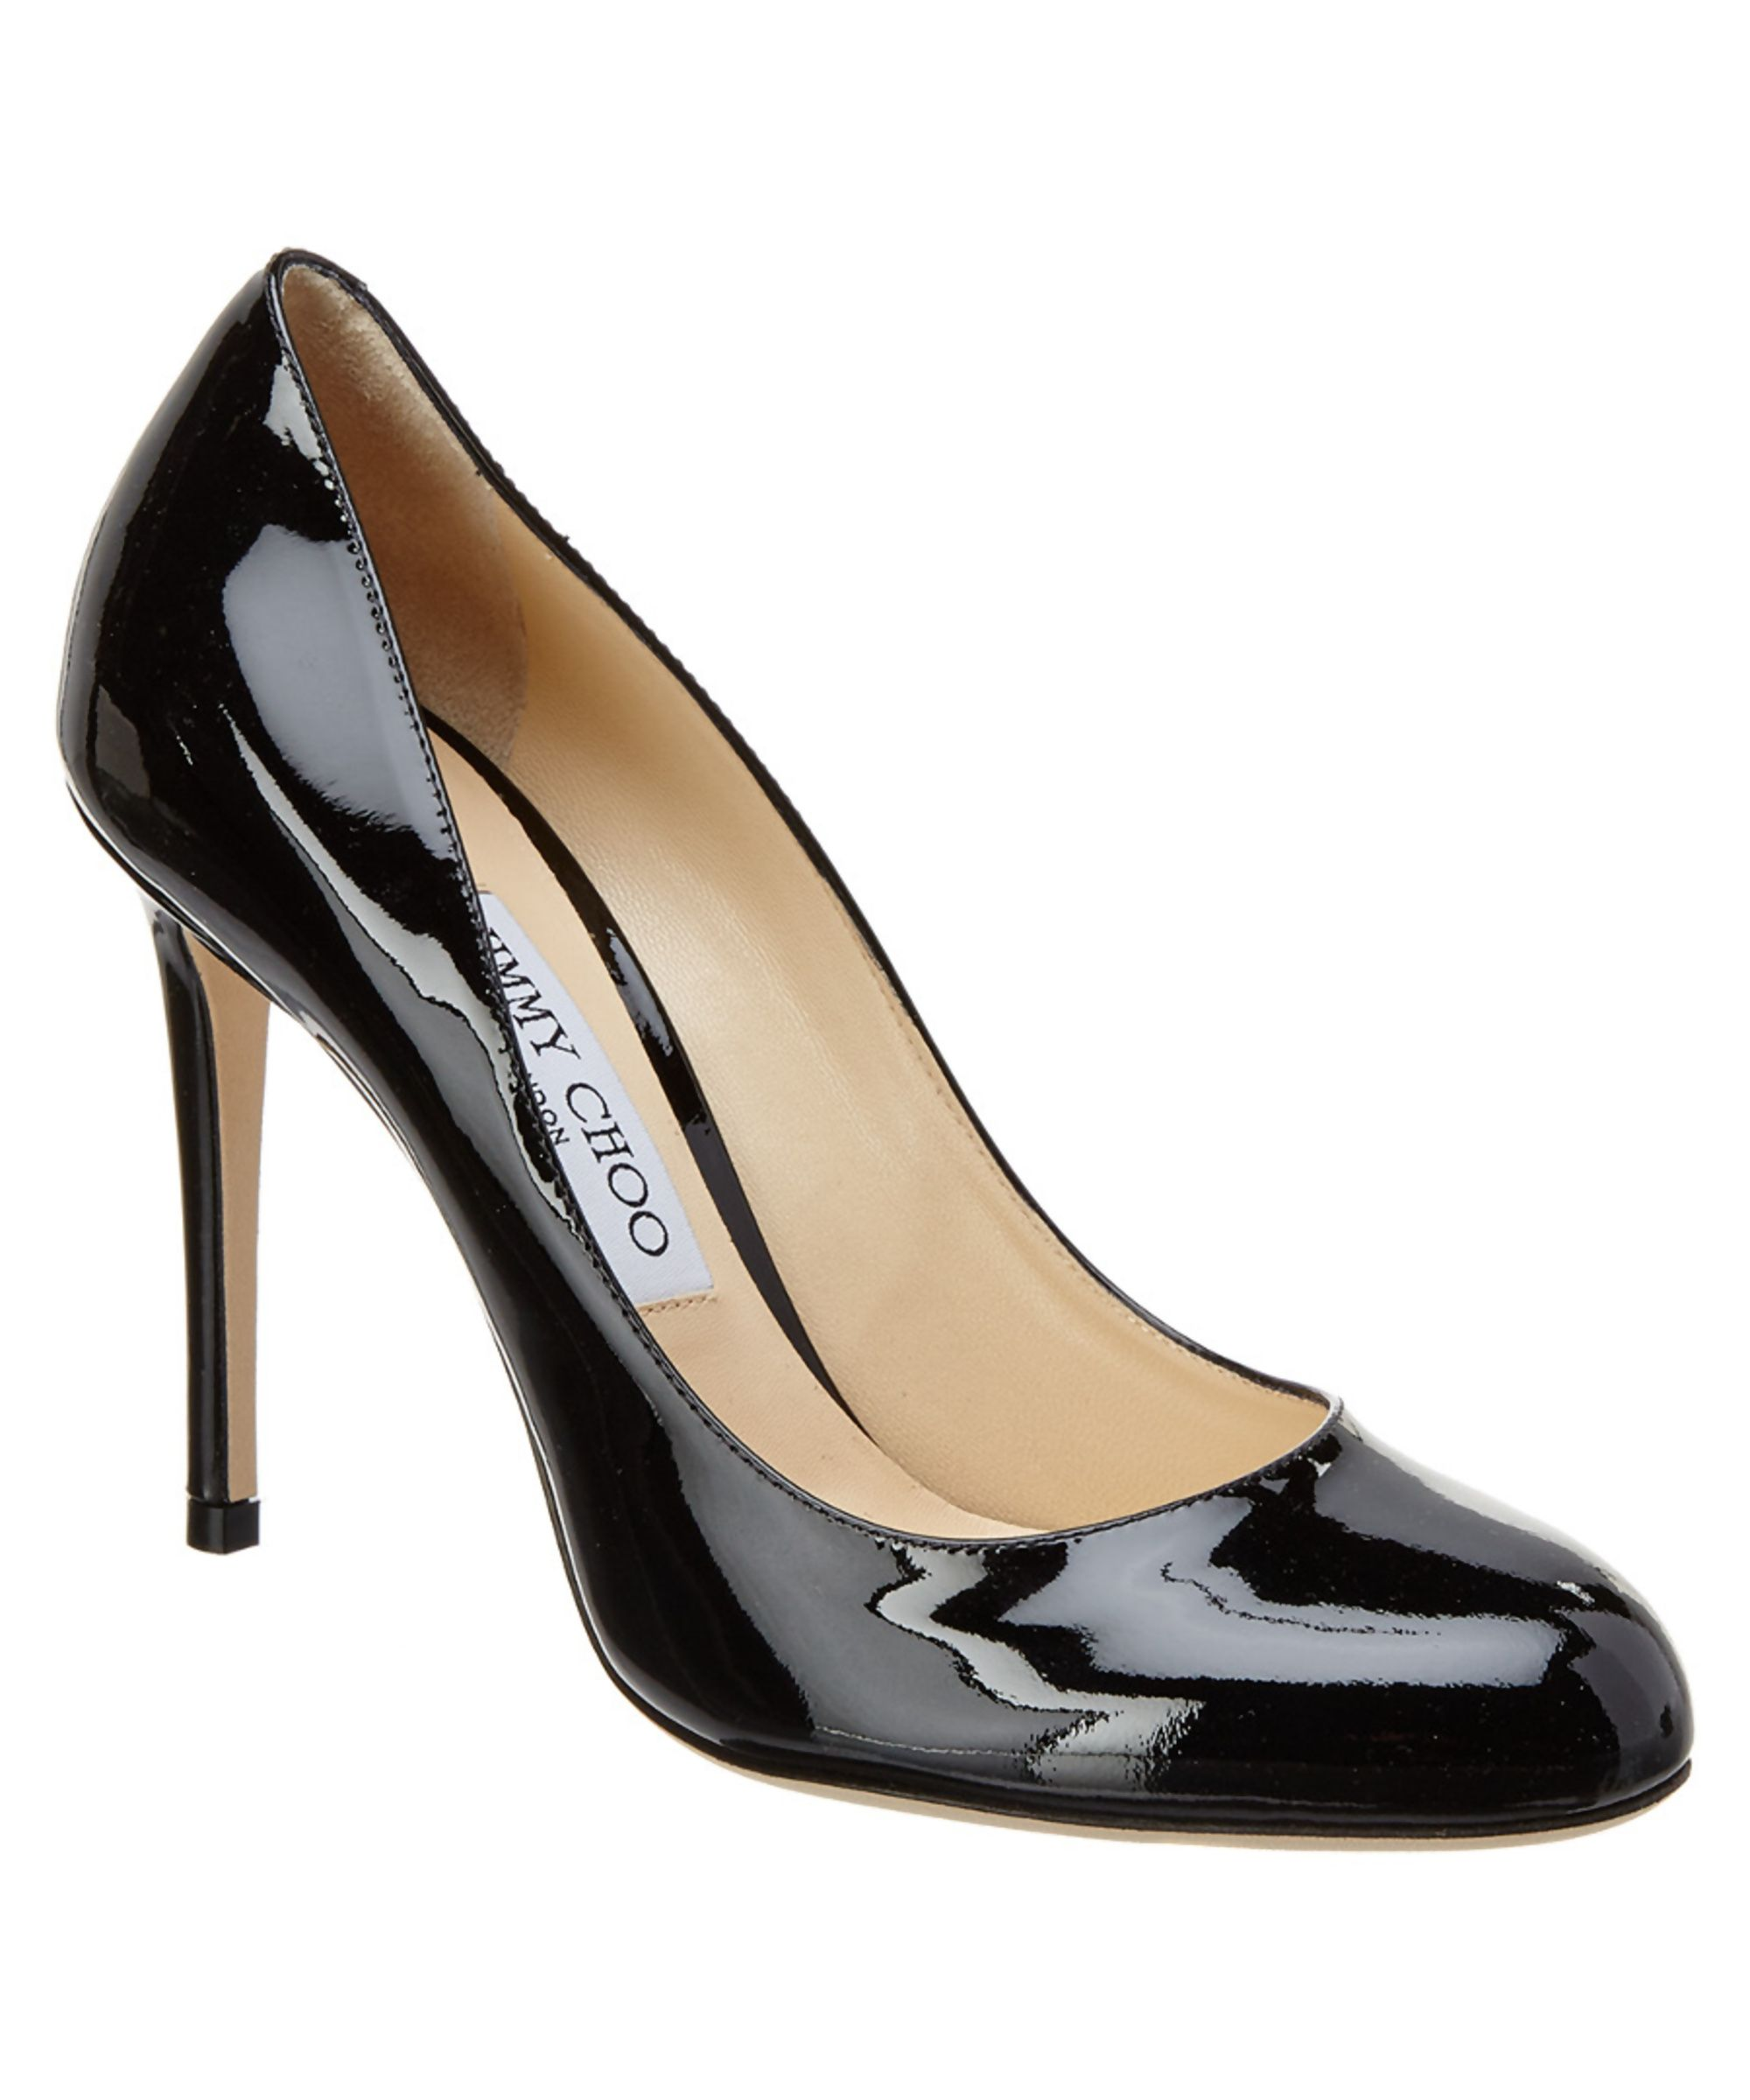 sale for nice Jimmy Choo Tortoiseshell Round-Toe Pumps cheap sale choice outlet with paypal order online visit cheap online mr7GbX5ufs